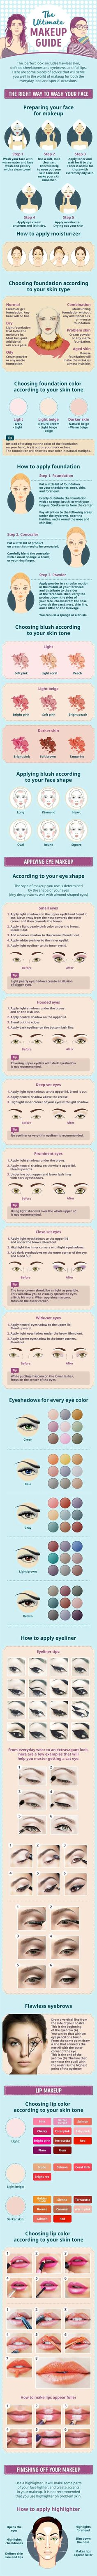 Best Makeup Tutorials for Teens -The Ultimate Makeup Guide You Can't Live Without - Easy Makeup Ideas for Beginners - Step by Step Tutorials for Foundation, Eye Shadow, Lipstick, Cheeks, Contour, Eyebrows and Eyes - Awesome Makeup Hacks and Tips for Simple DIY Beauty - Day and Evening Looks http://diyprojectsforteens.com/makeup-tutorials-teens